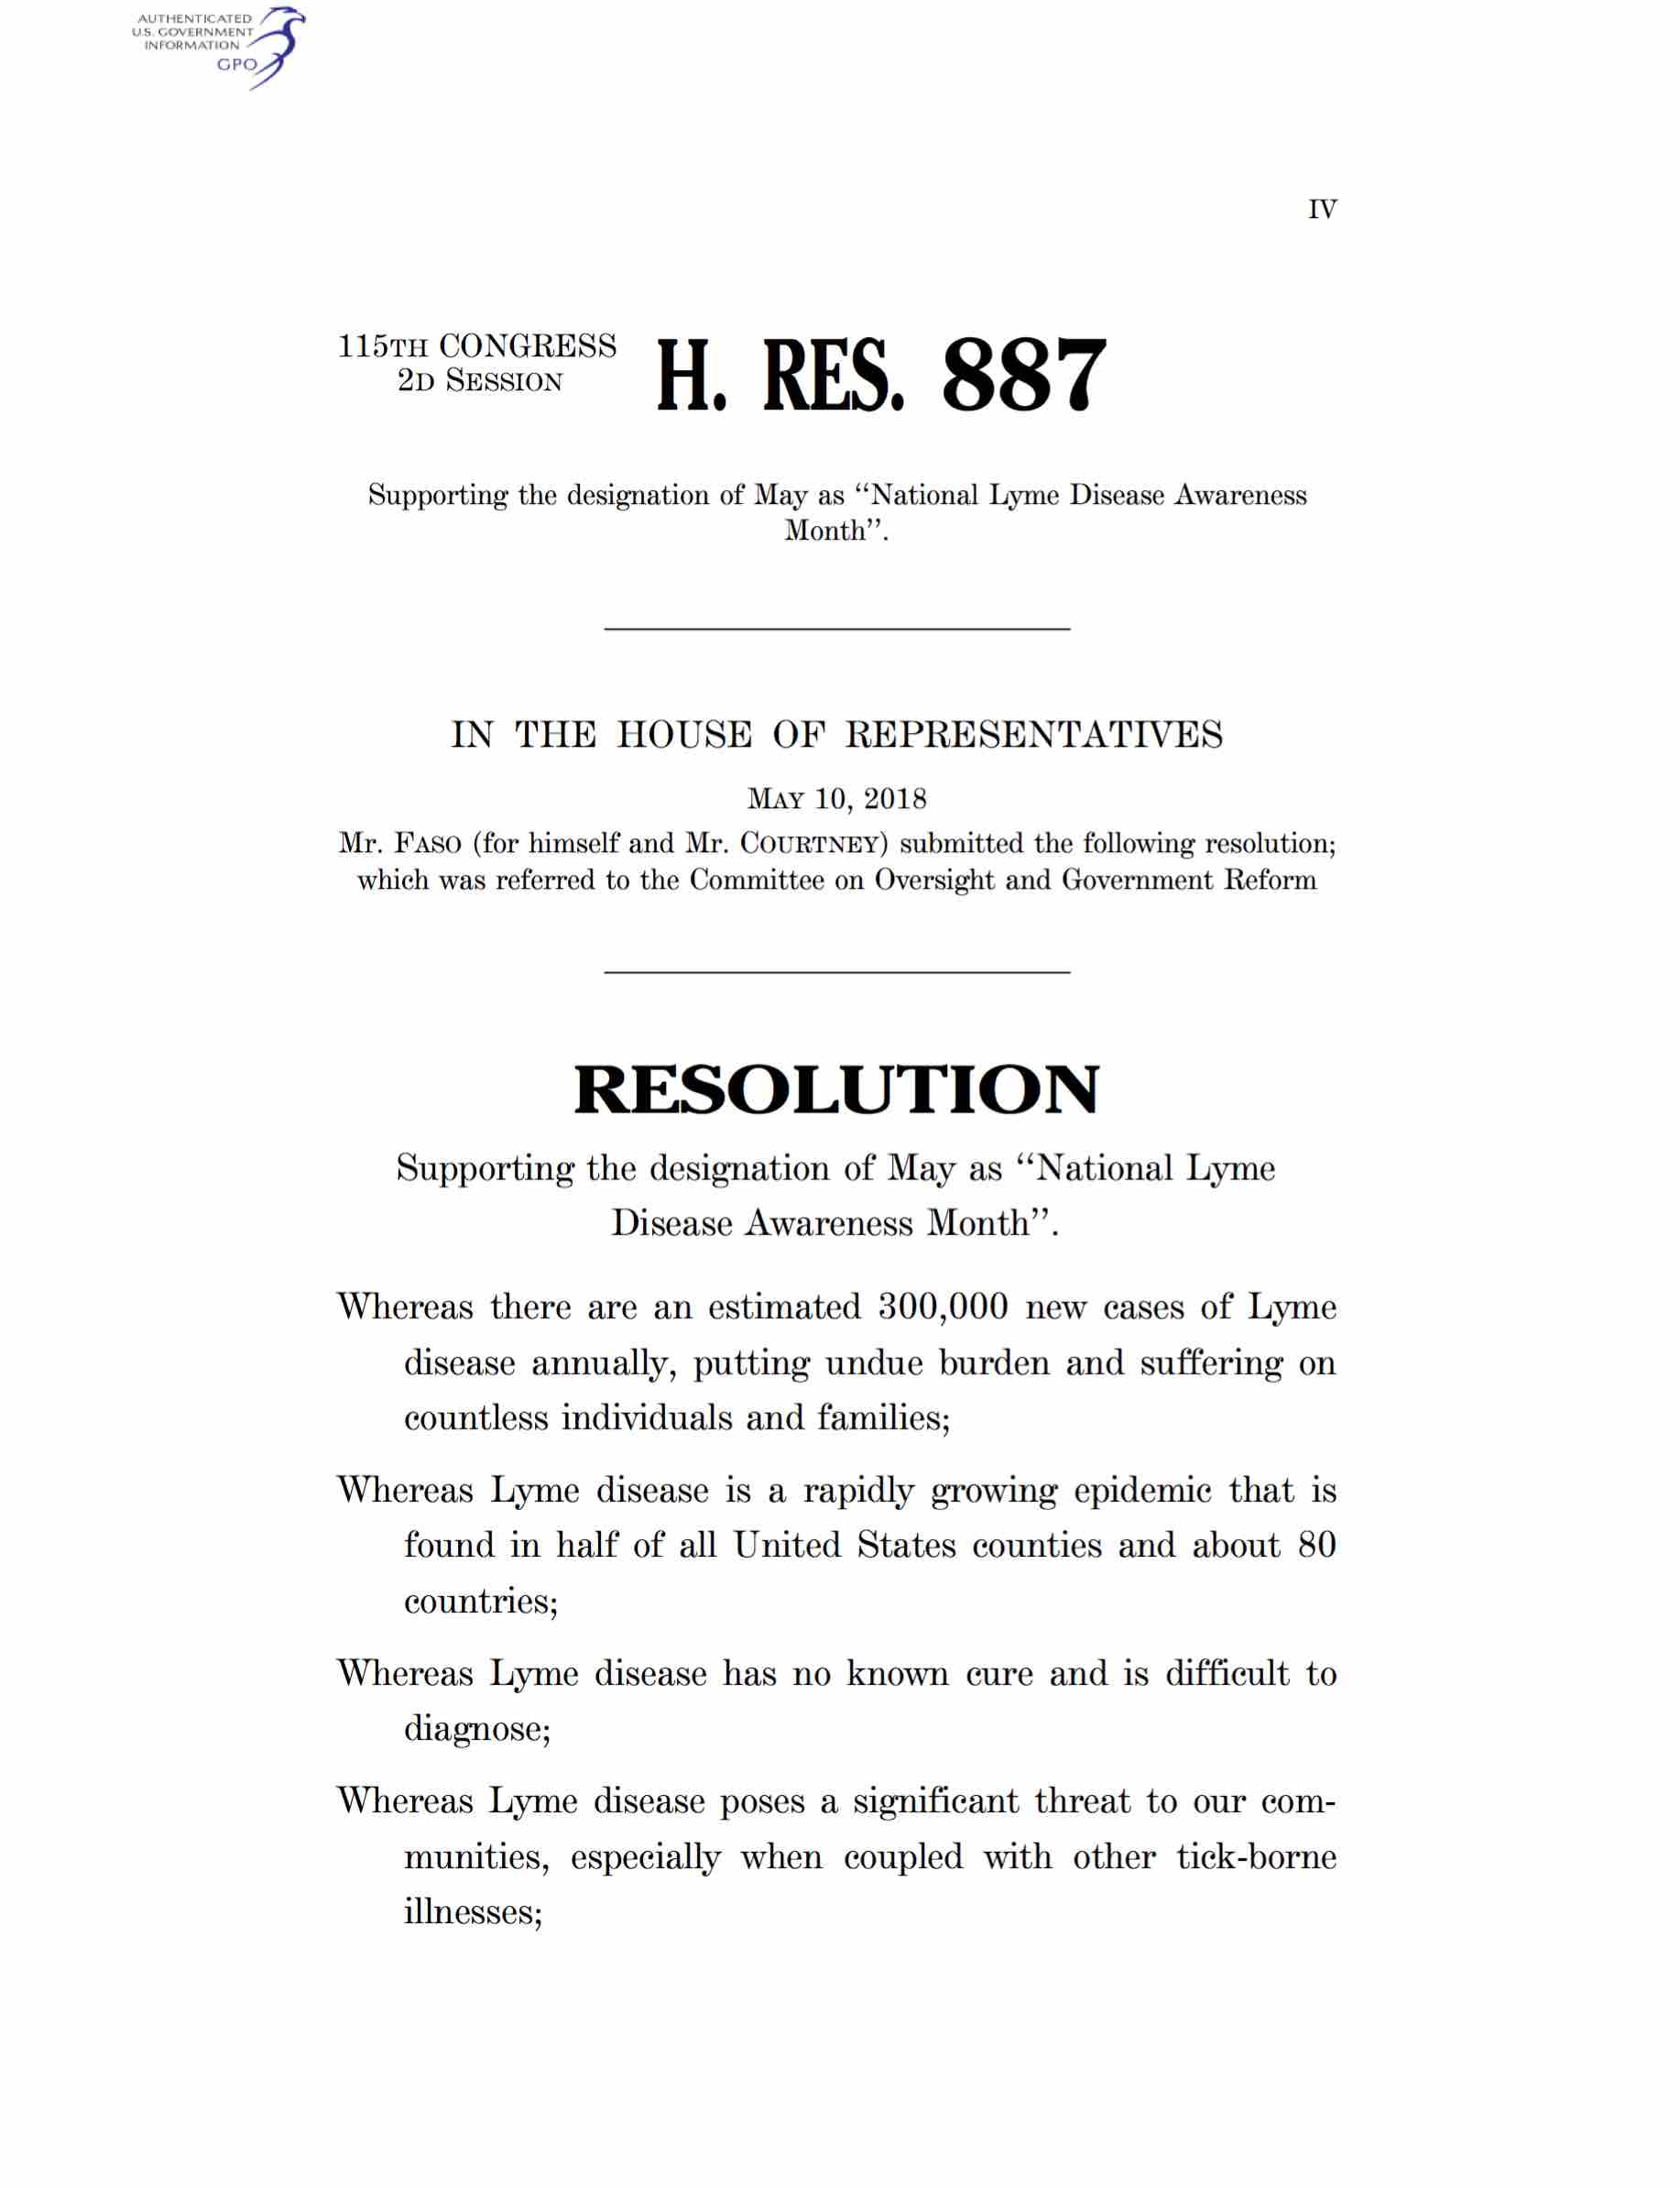 House Faso Lyme Resolution